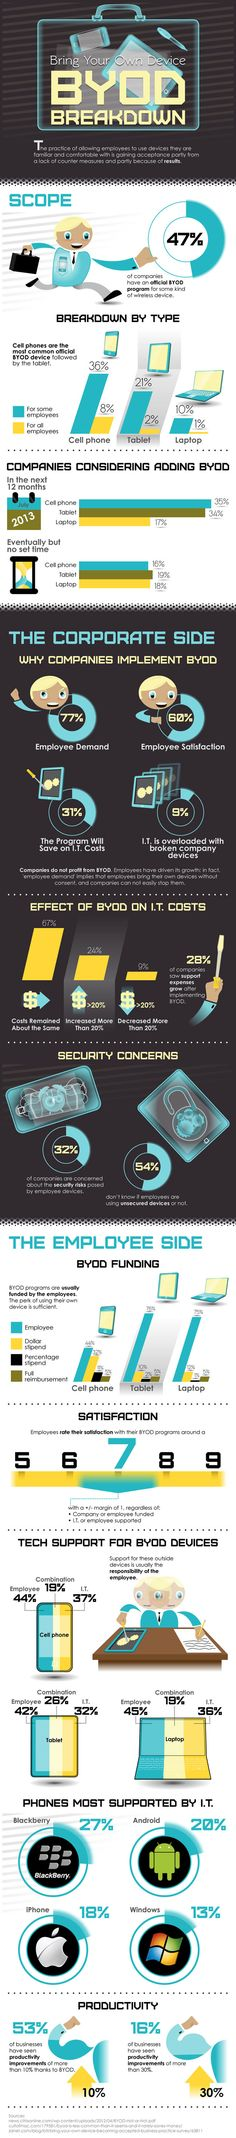 Advantages and disadvantages of the Bring Your Own Device trend [#infographic] #mobile #byod